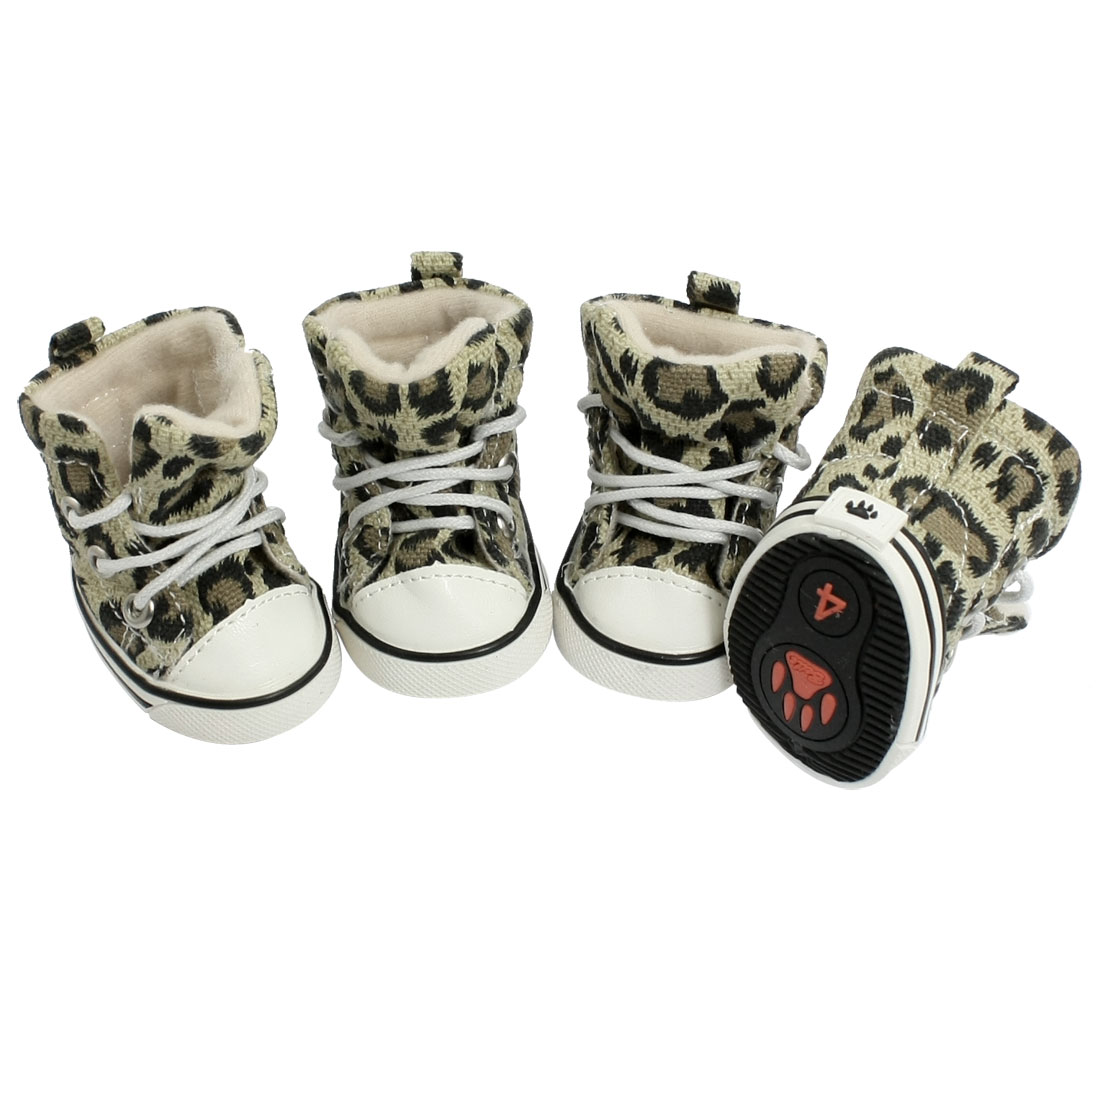 4 Pcs Size 4 Leopard Print Cozy Pet Dog Boots Booties Puppy Shoes